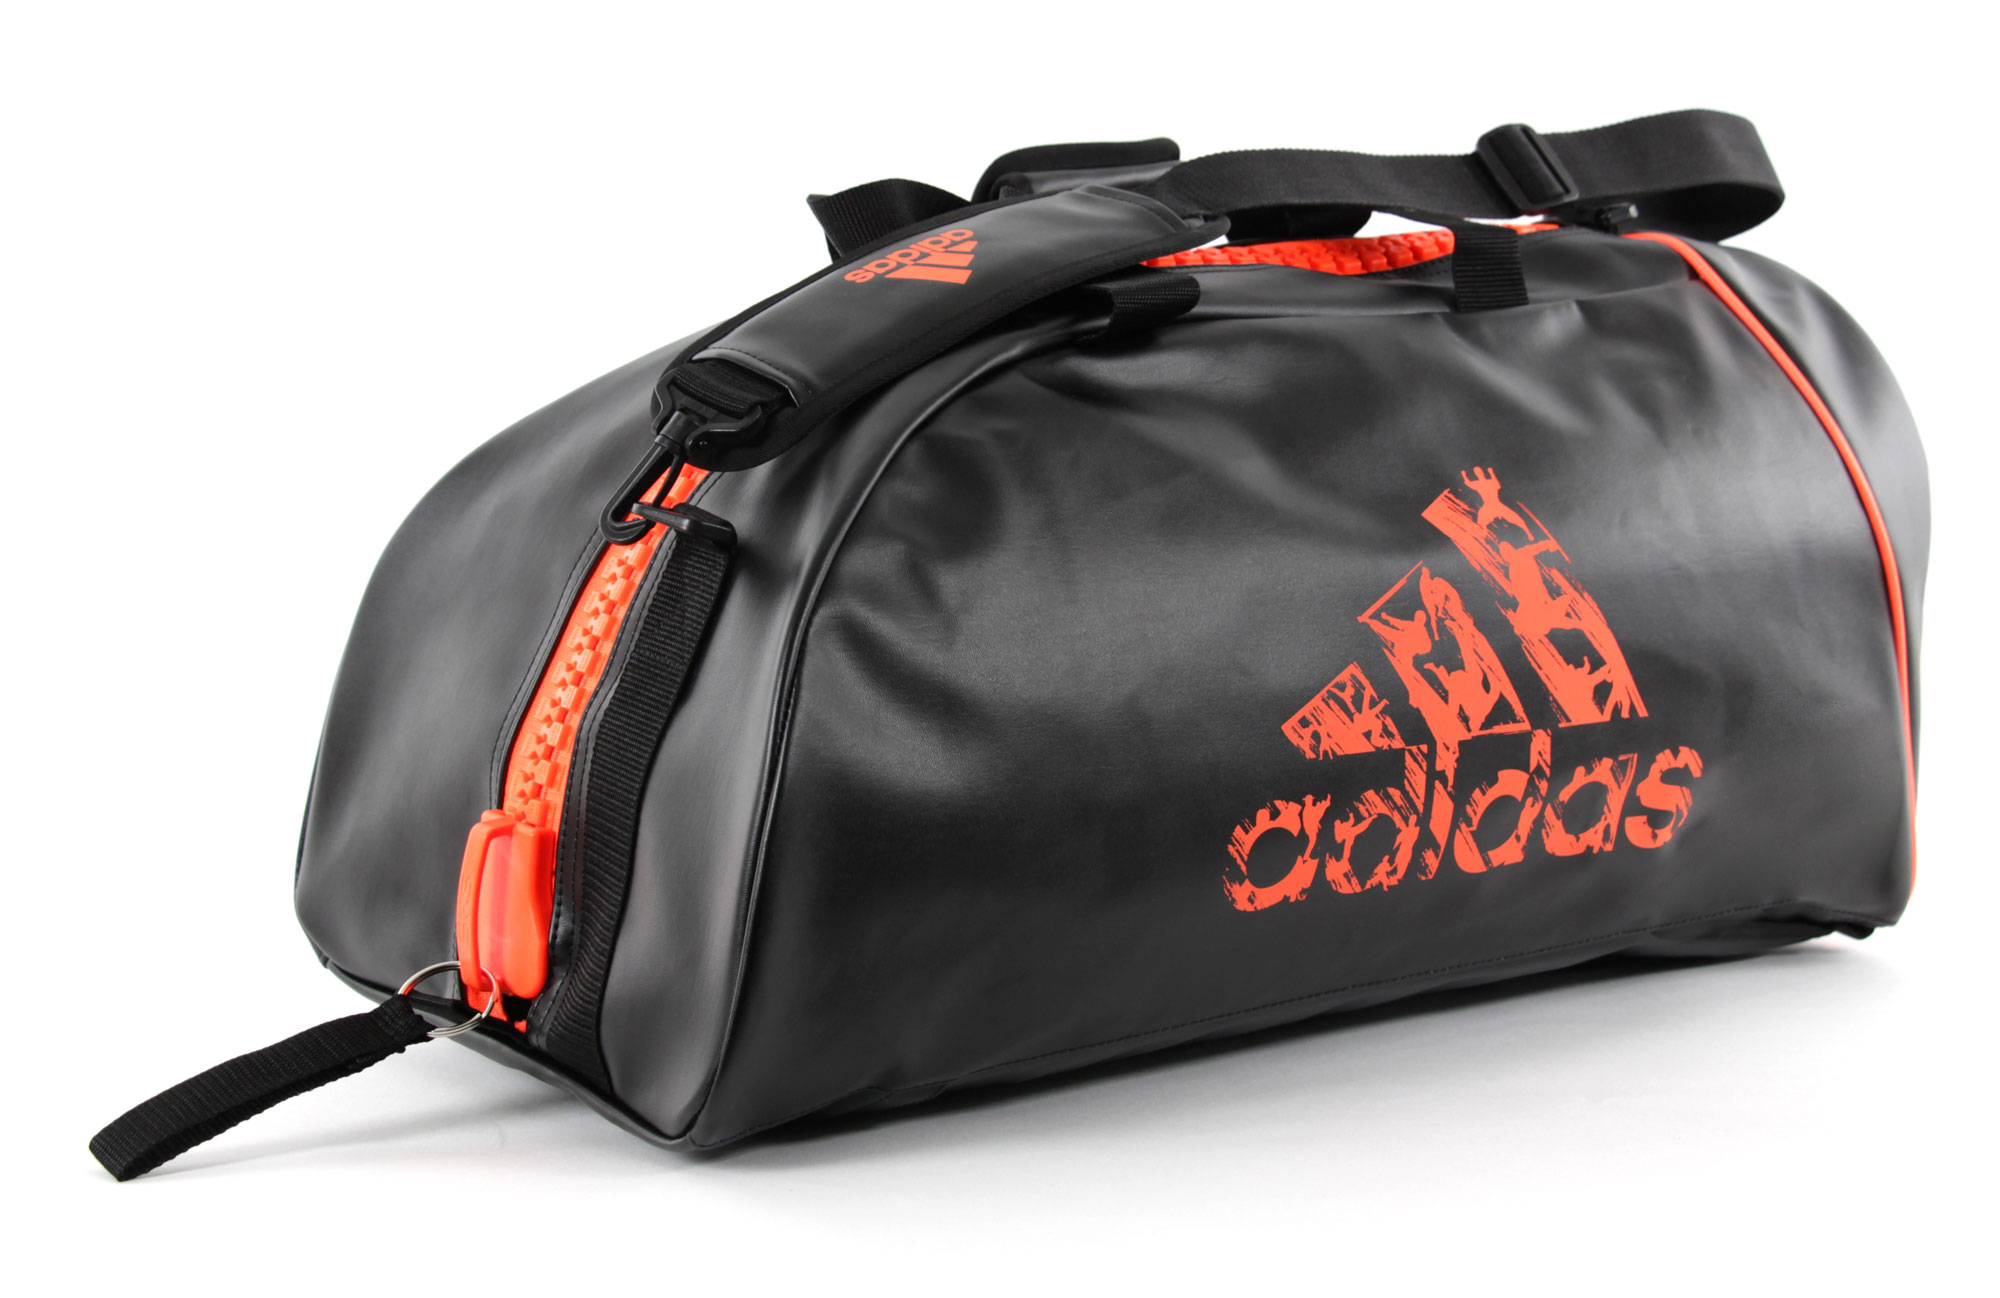 adidas rucksack tasche adiacc051 l schwarz orange g nstig. Black Bedroom Furniture Sets. Home Design Ideas